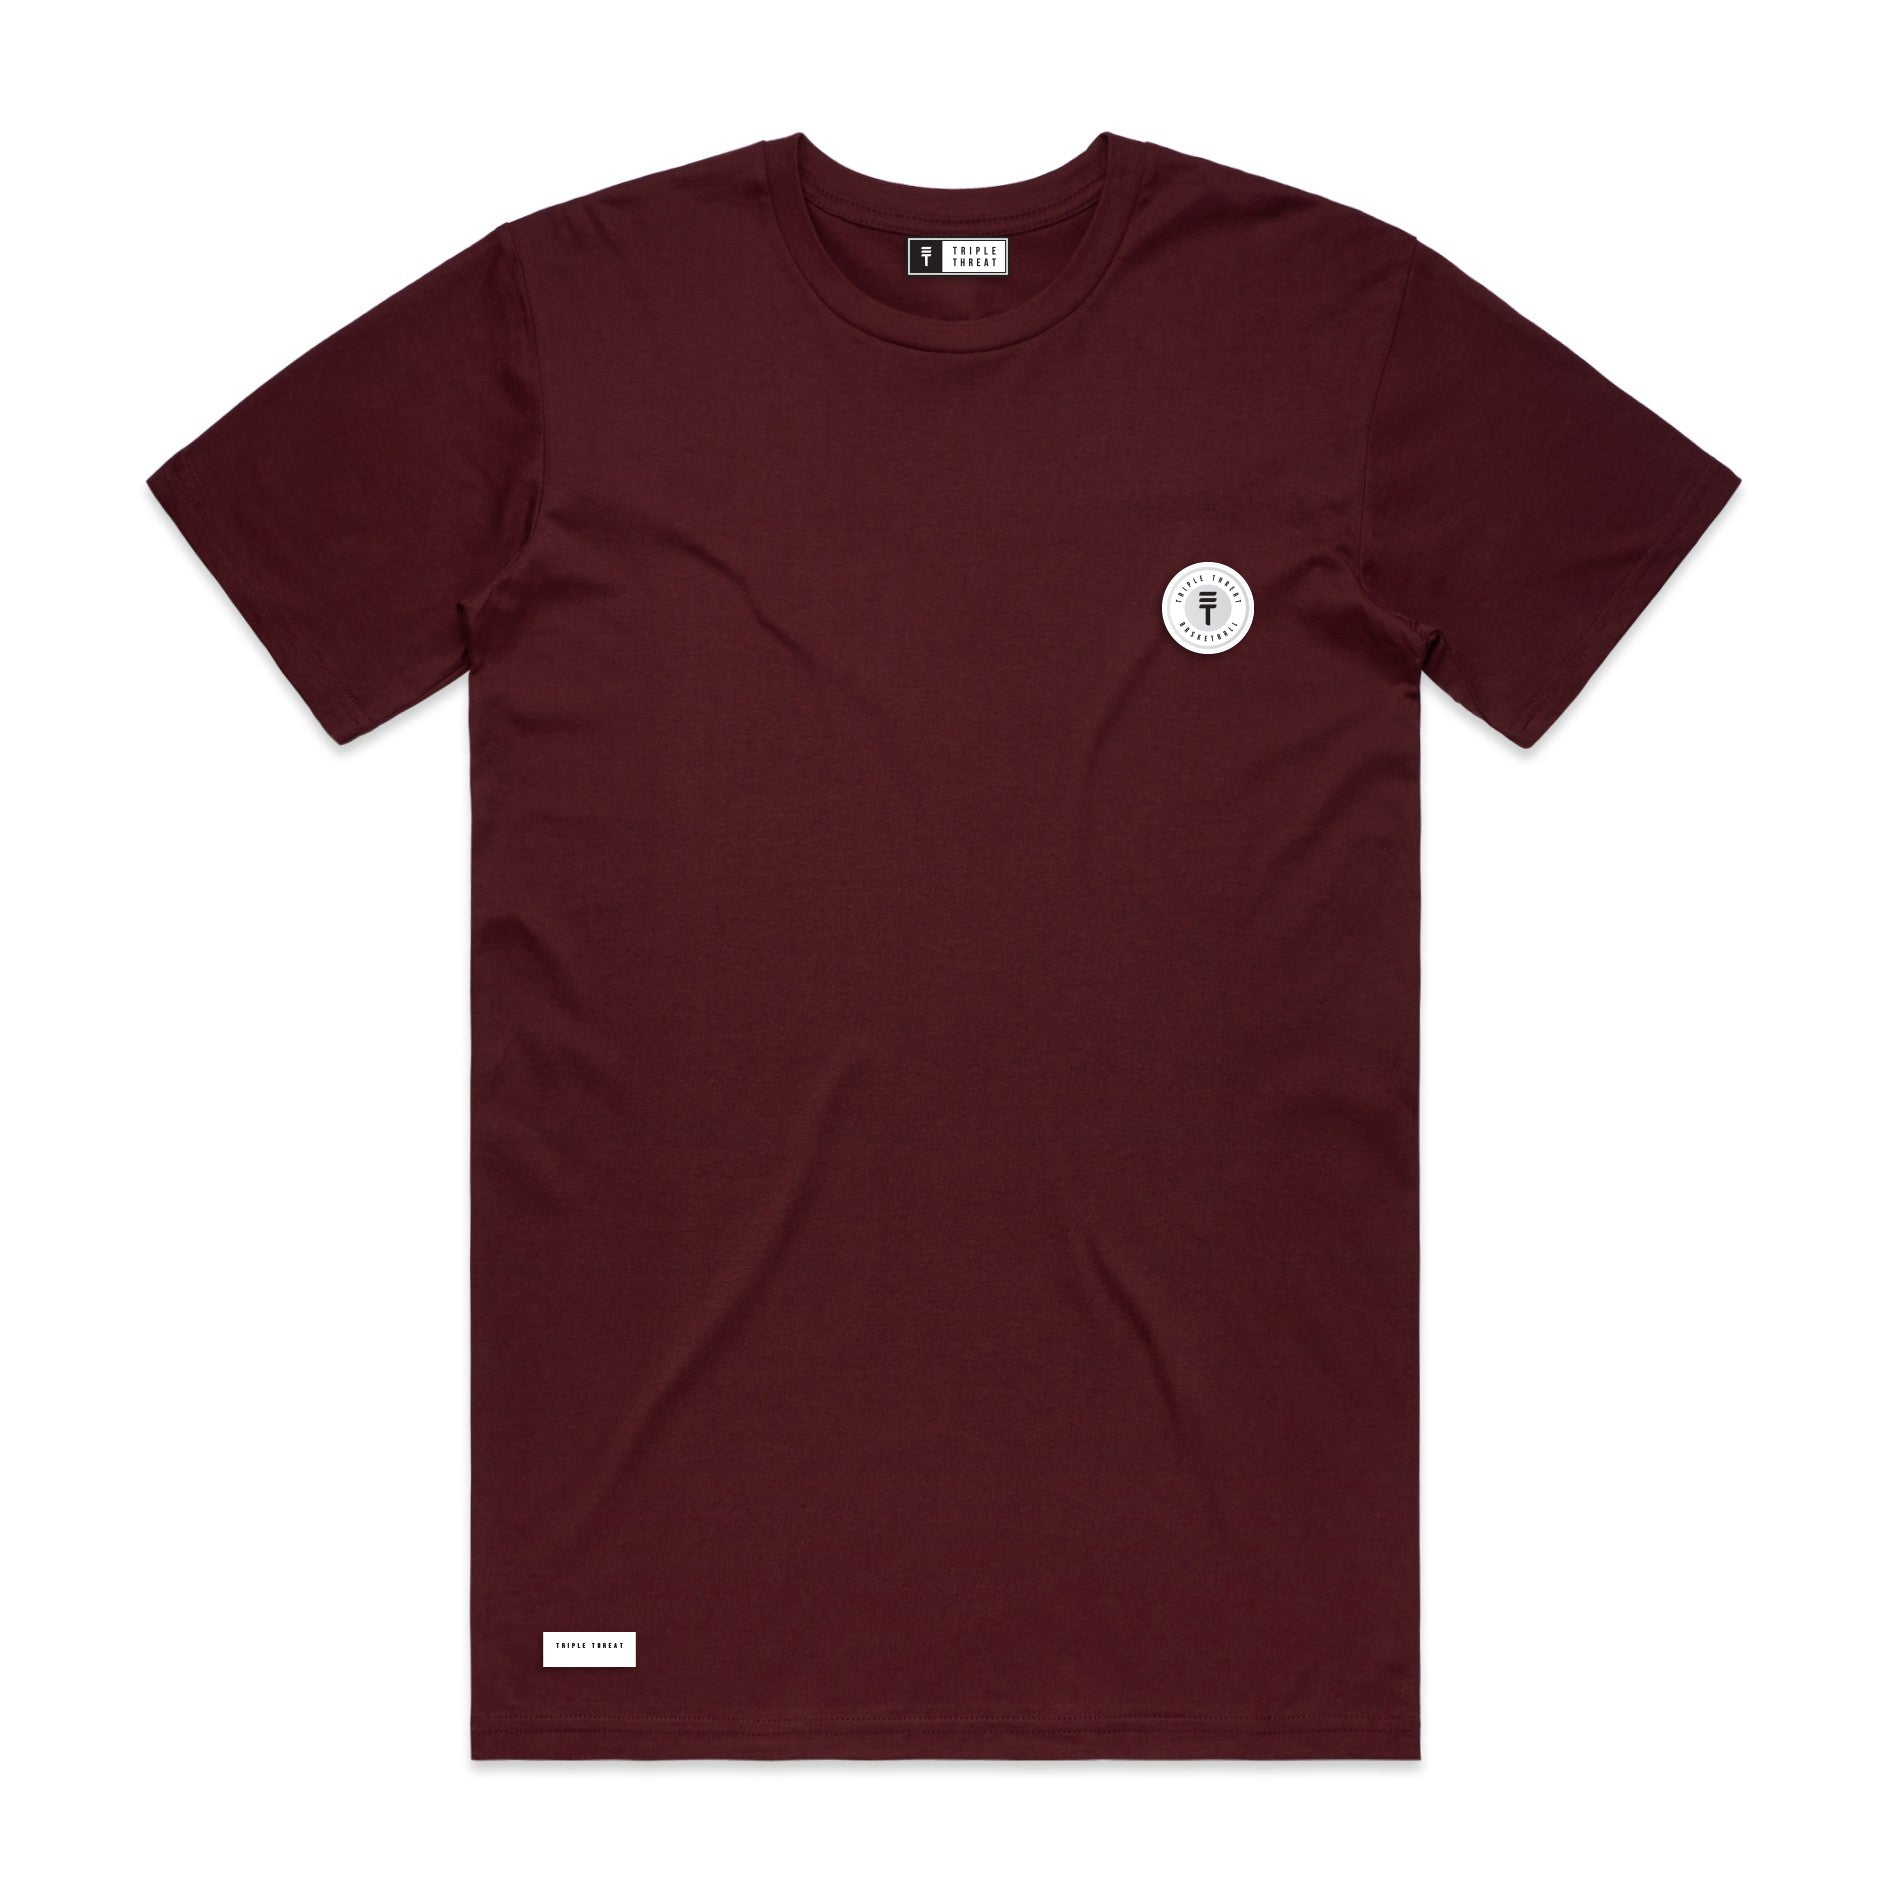 FUNDAMENTAL BADGE T-SHIRT - MAROON